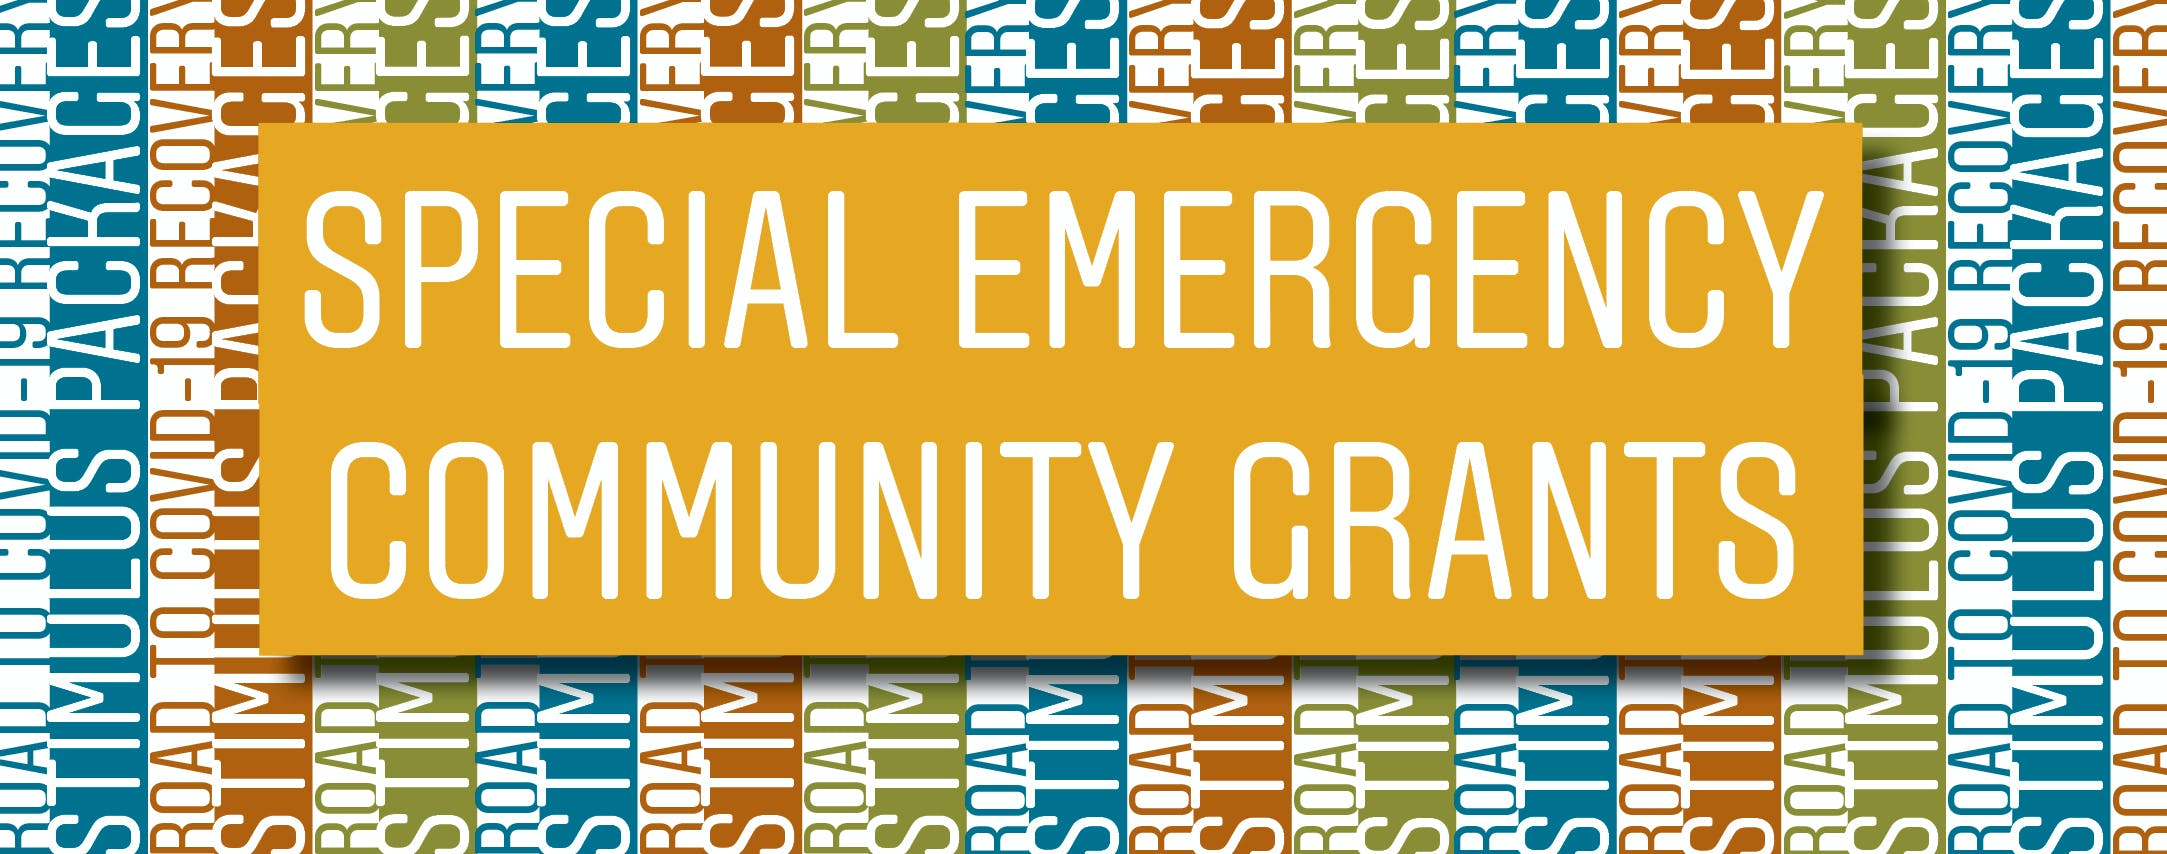 Special emergency community grants